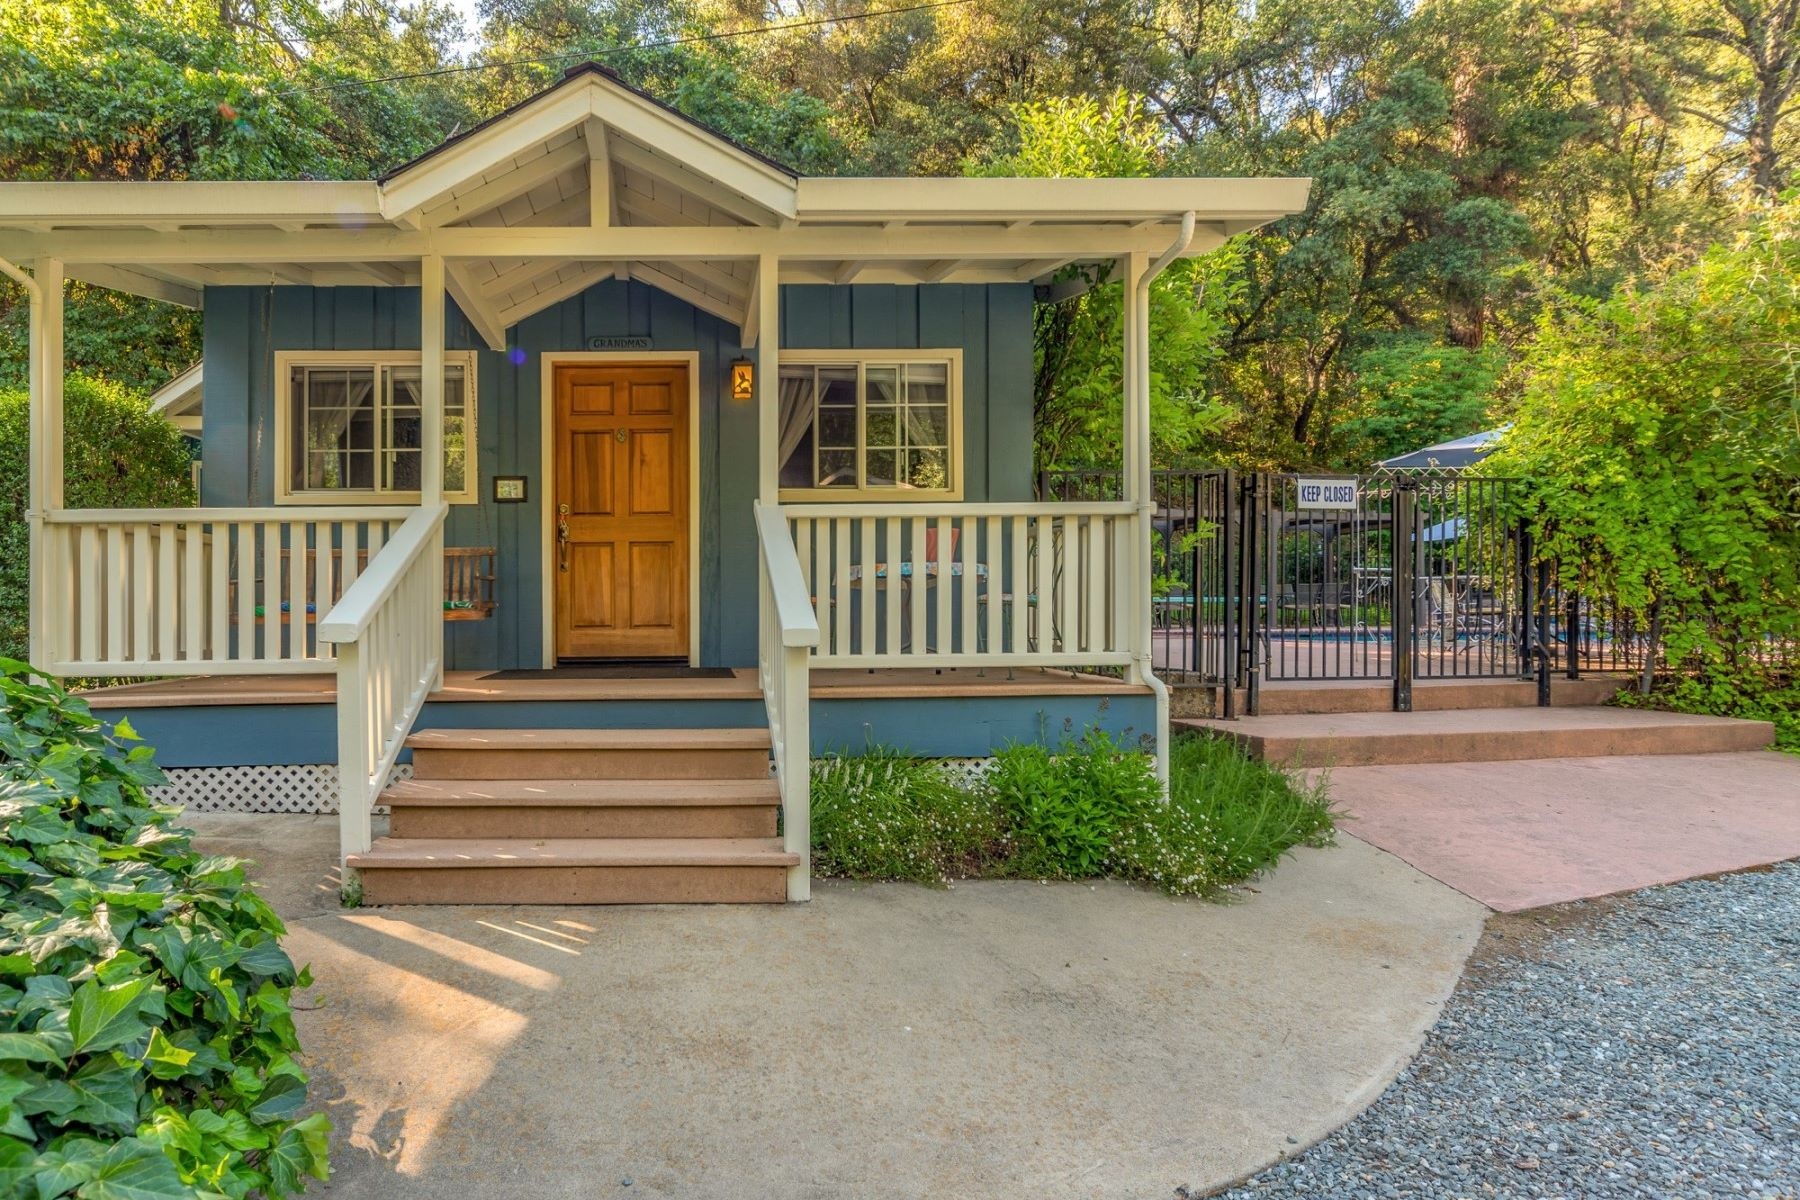 Single Family Homes for Sale at Creekside Country Retreat 2455 Murphys Grade Road Murphys, California 95247 United States